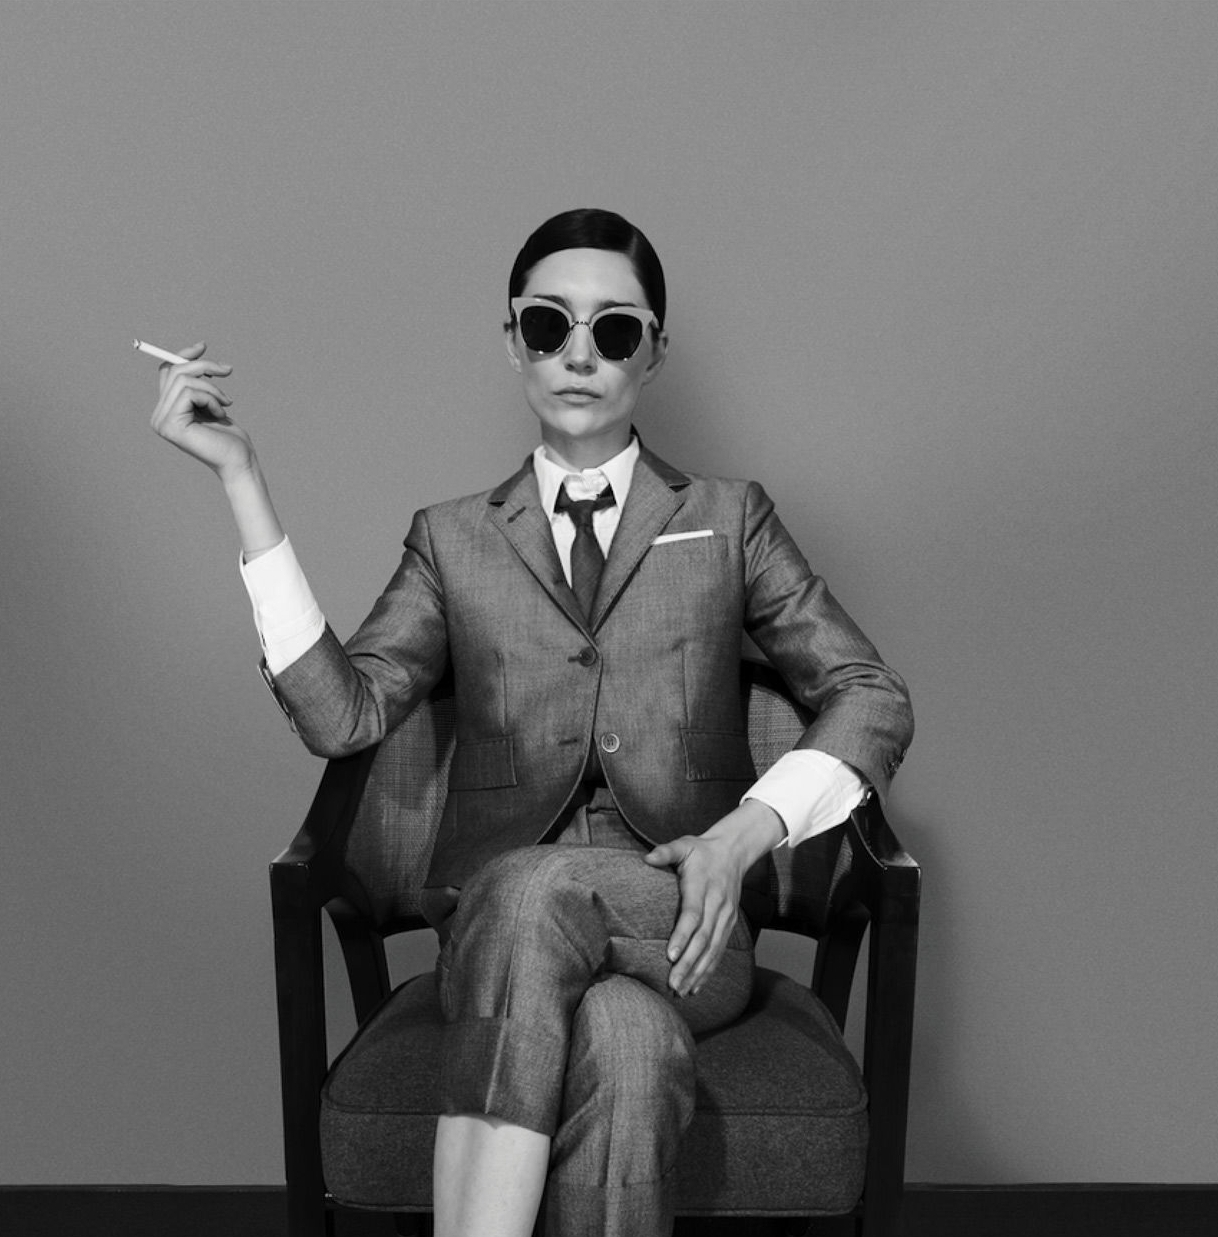 Thom Browne   Thom Browne began his business with five suits and with a small by-appointment-only shop in 2001.In 2011 he launched a women's ready-to-wear collection, and in 2012 a unisex eyewear collection. Thom was the recipient of the 2012 Smithsonian Cooper Hewitt National Design Award in Fashion Design and 2013 CFDA Menswear Designer of the Year.   Learn more about Thom Browne